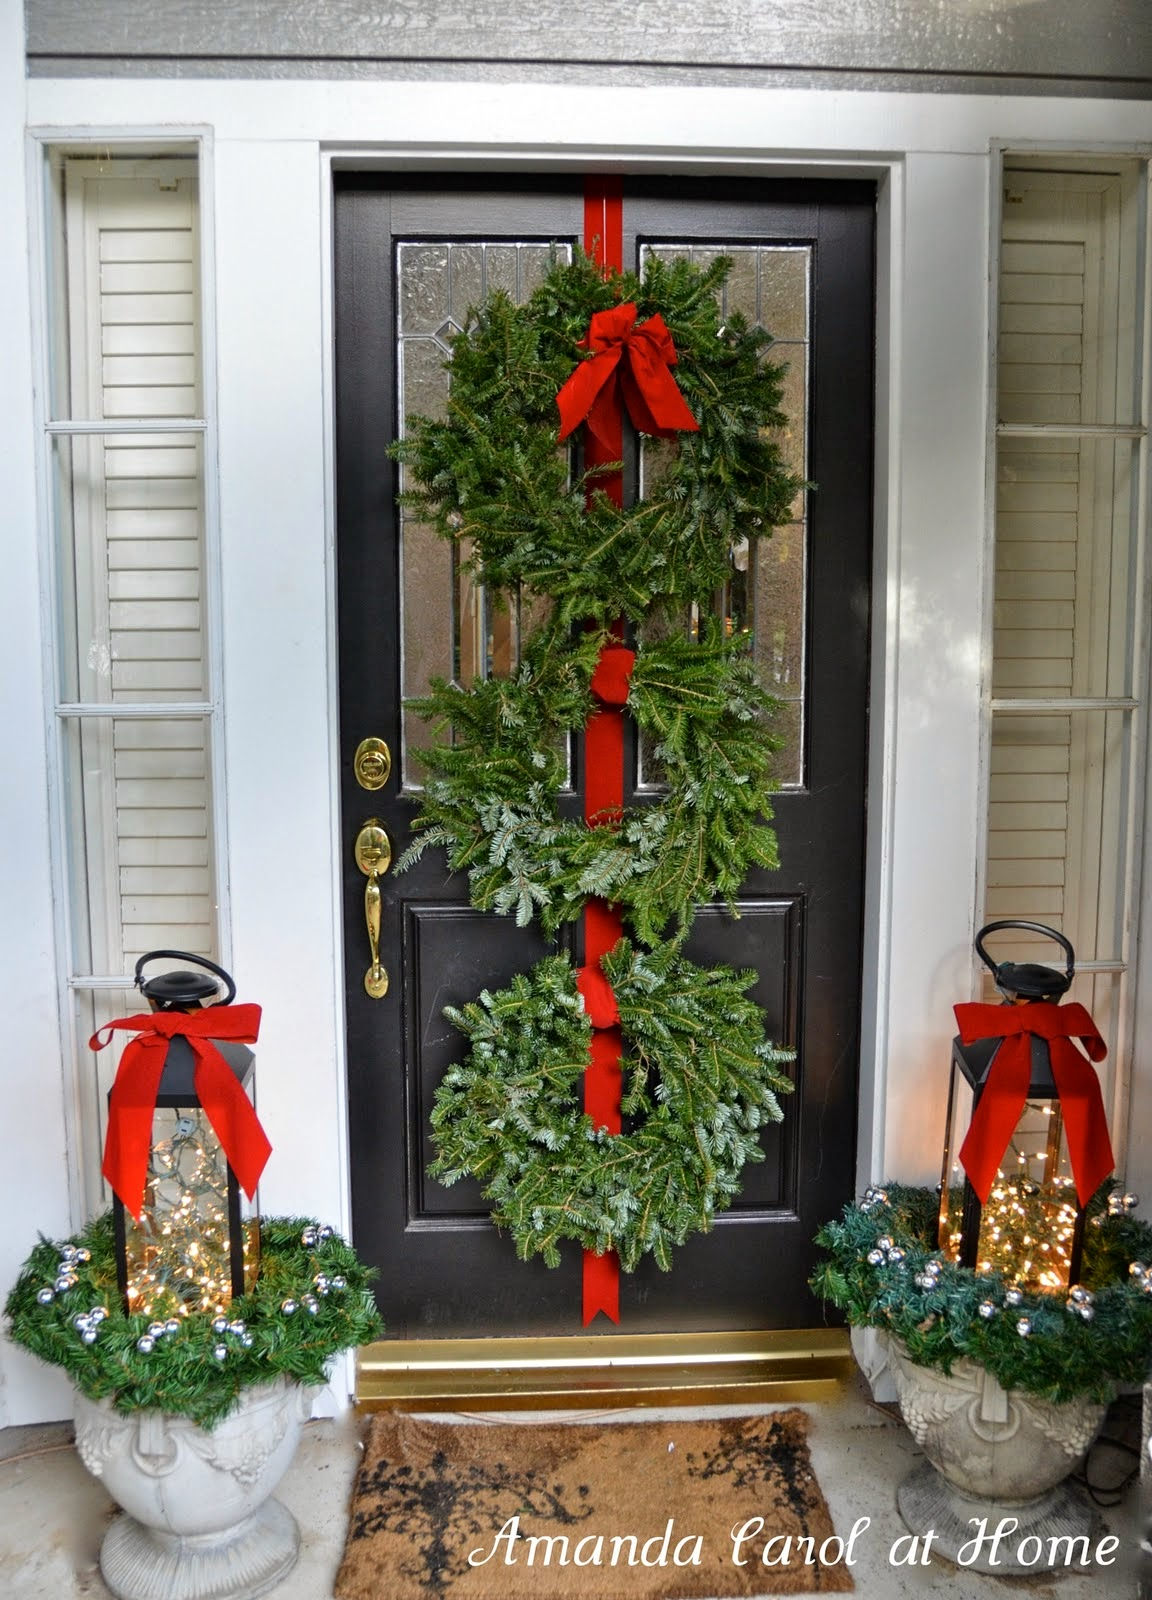 22 fall front porch ideas veranda home stories a to z - Home Front Decor Ideas 7 Front Porch Decorating Ideas Pictures For Your Home